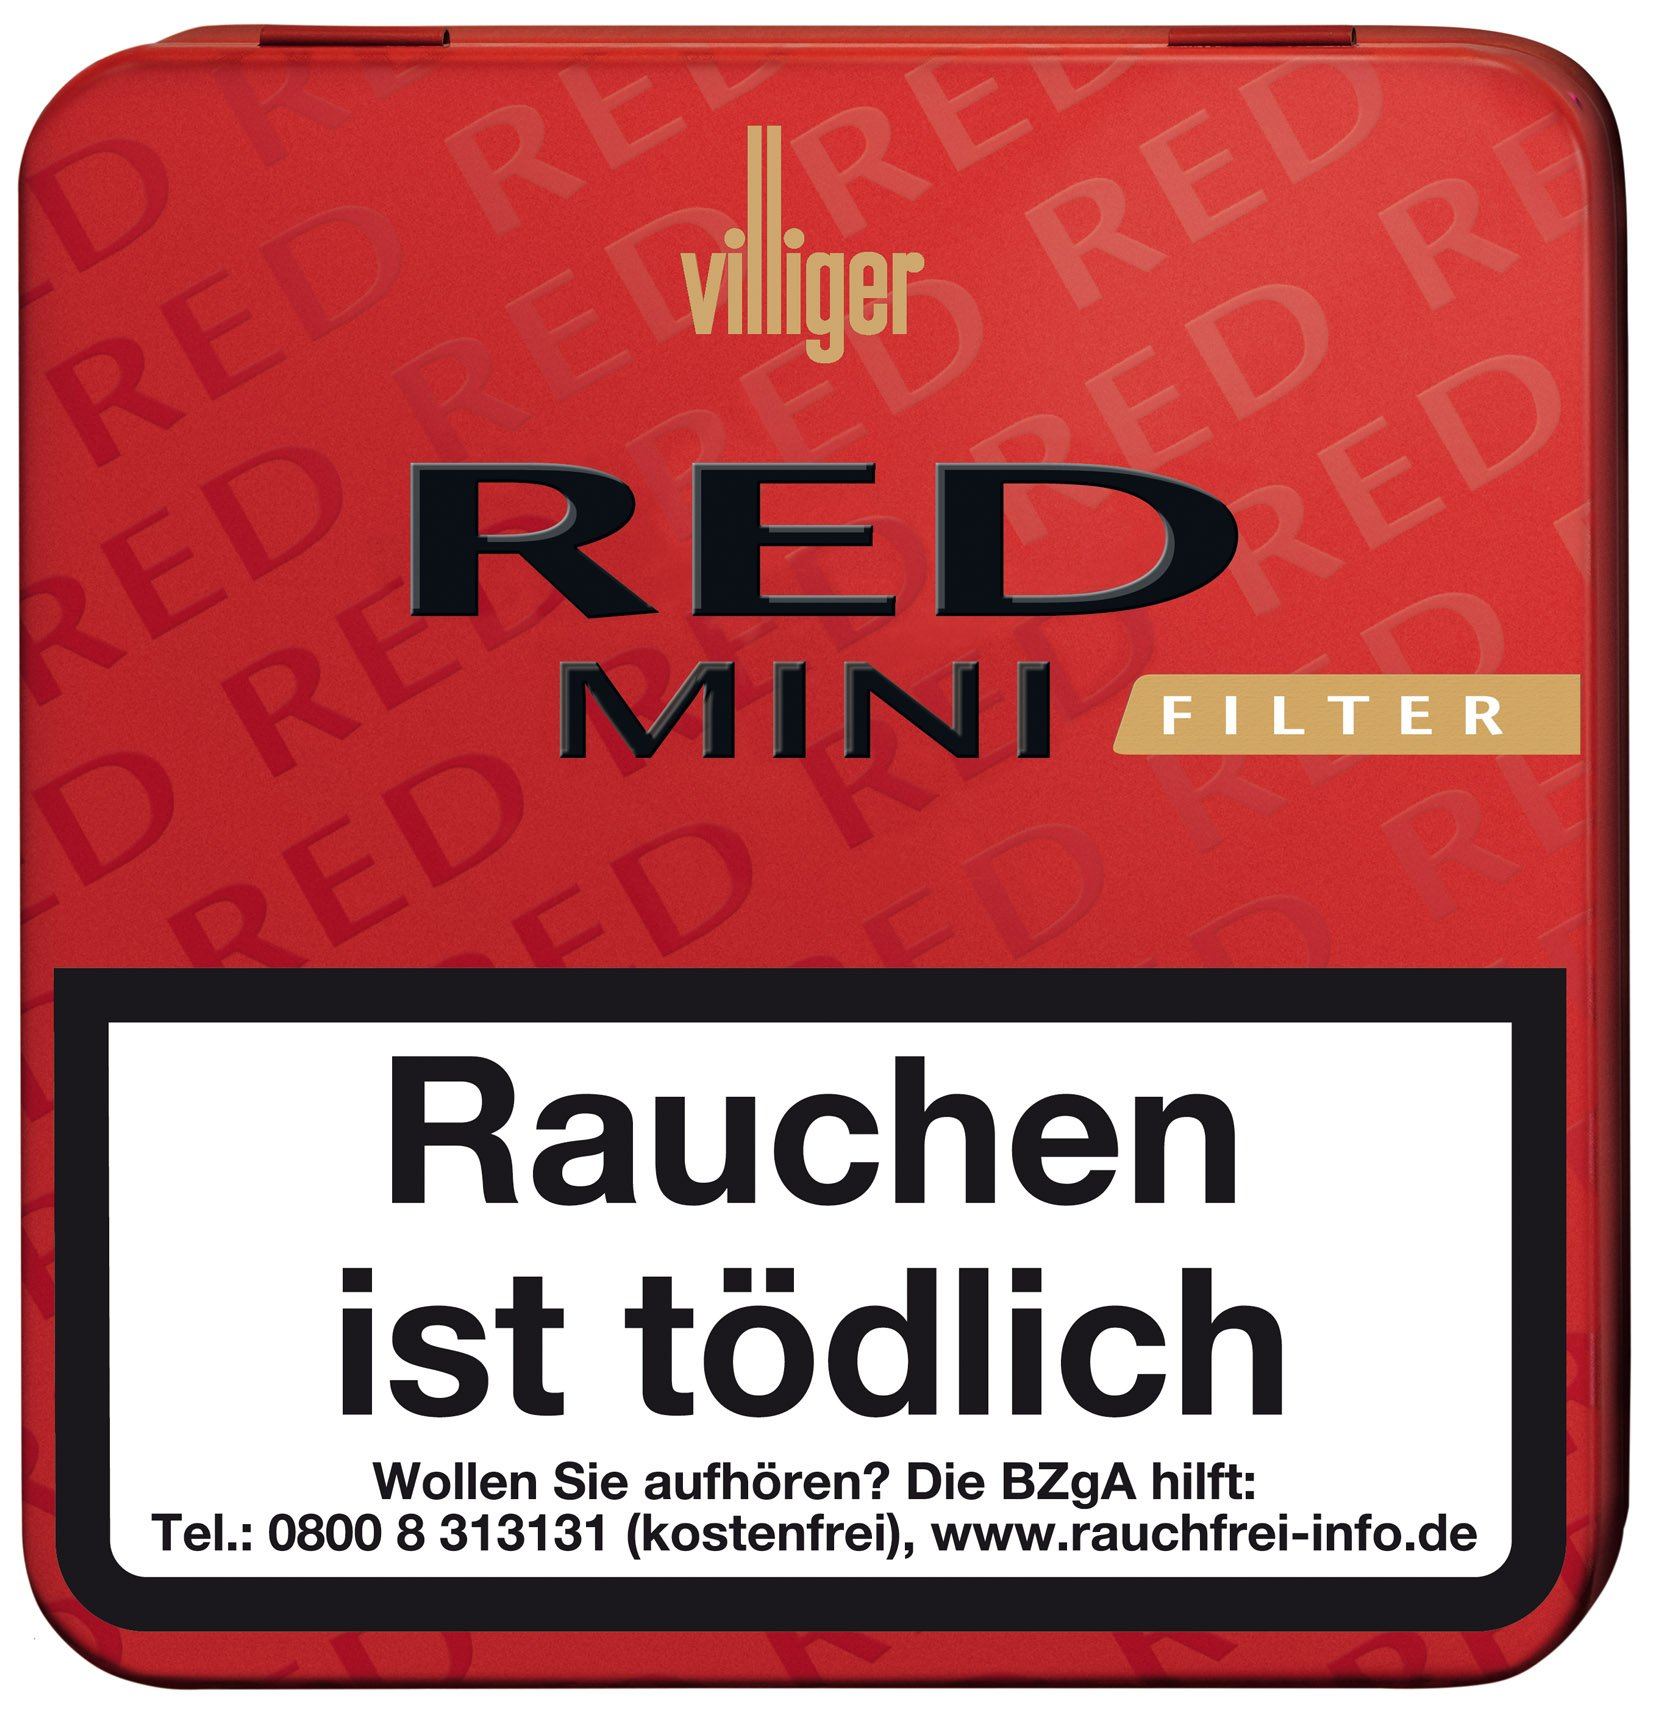 Villiger Zigarillos Red Mini Filter Blechdose (ehemals Vanilla)